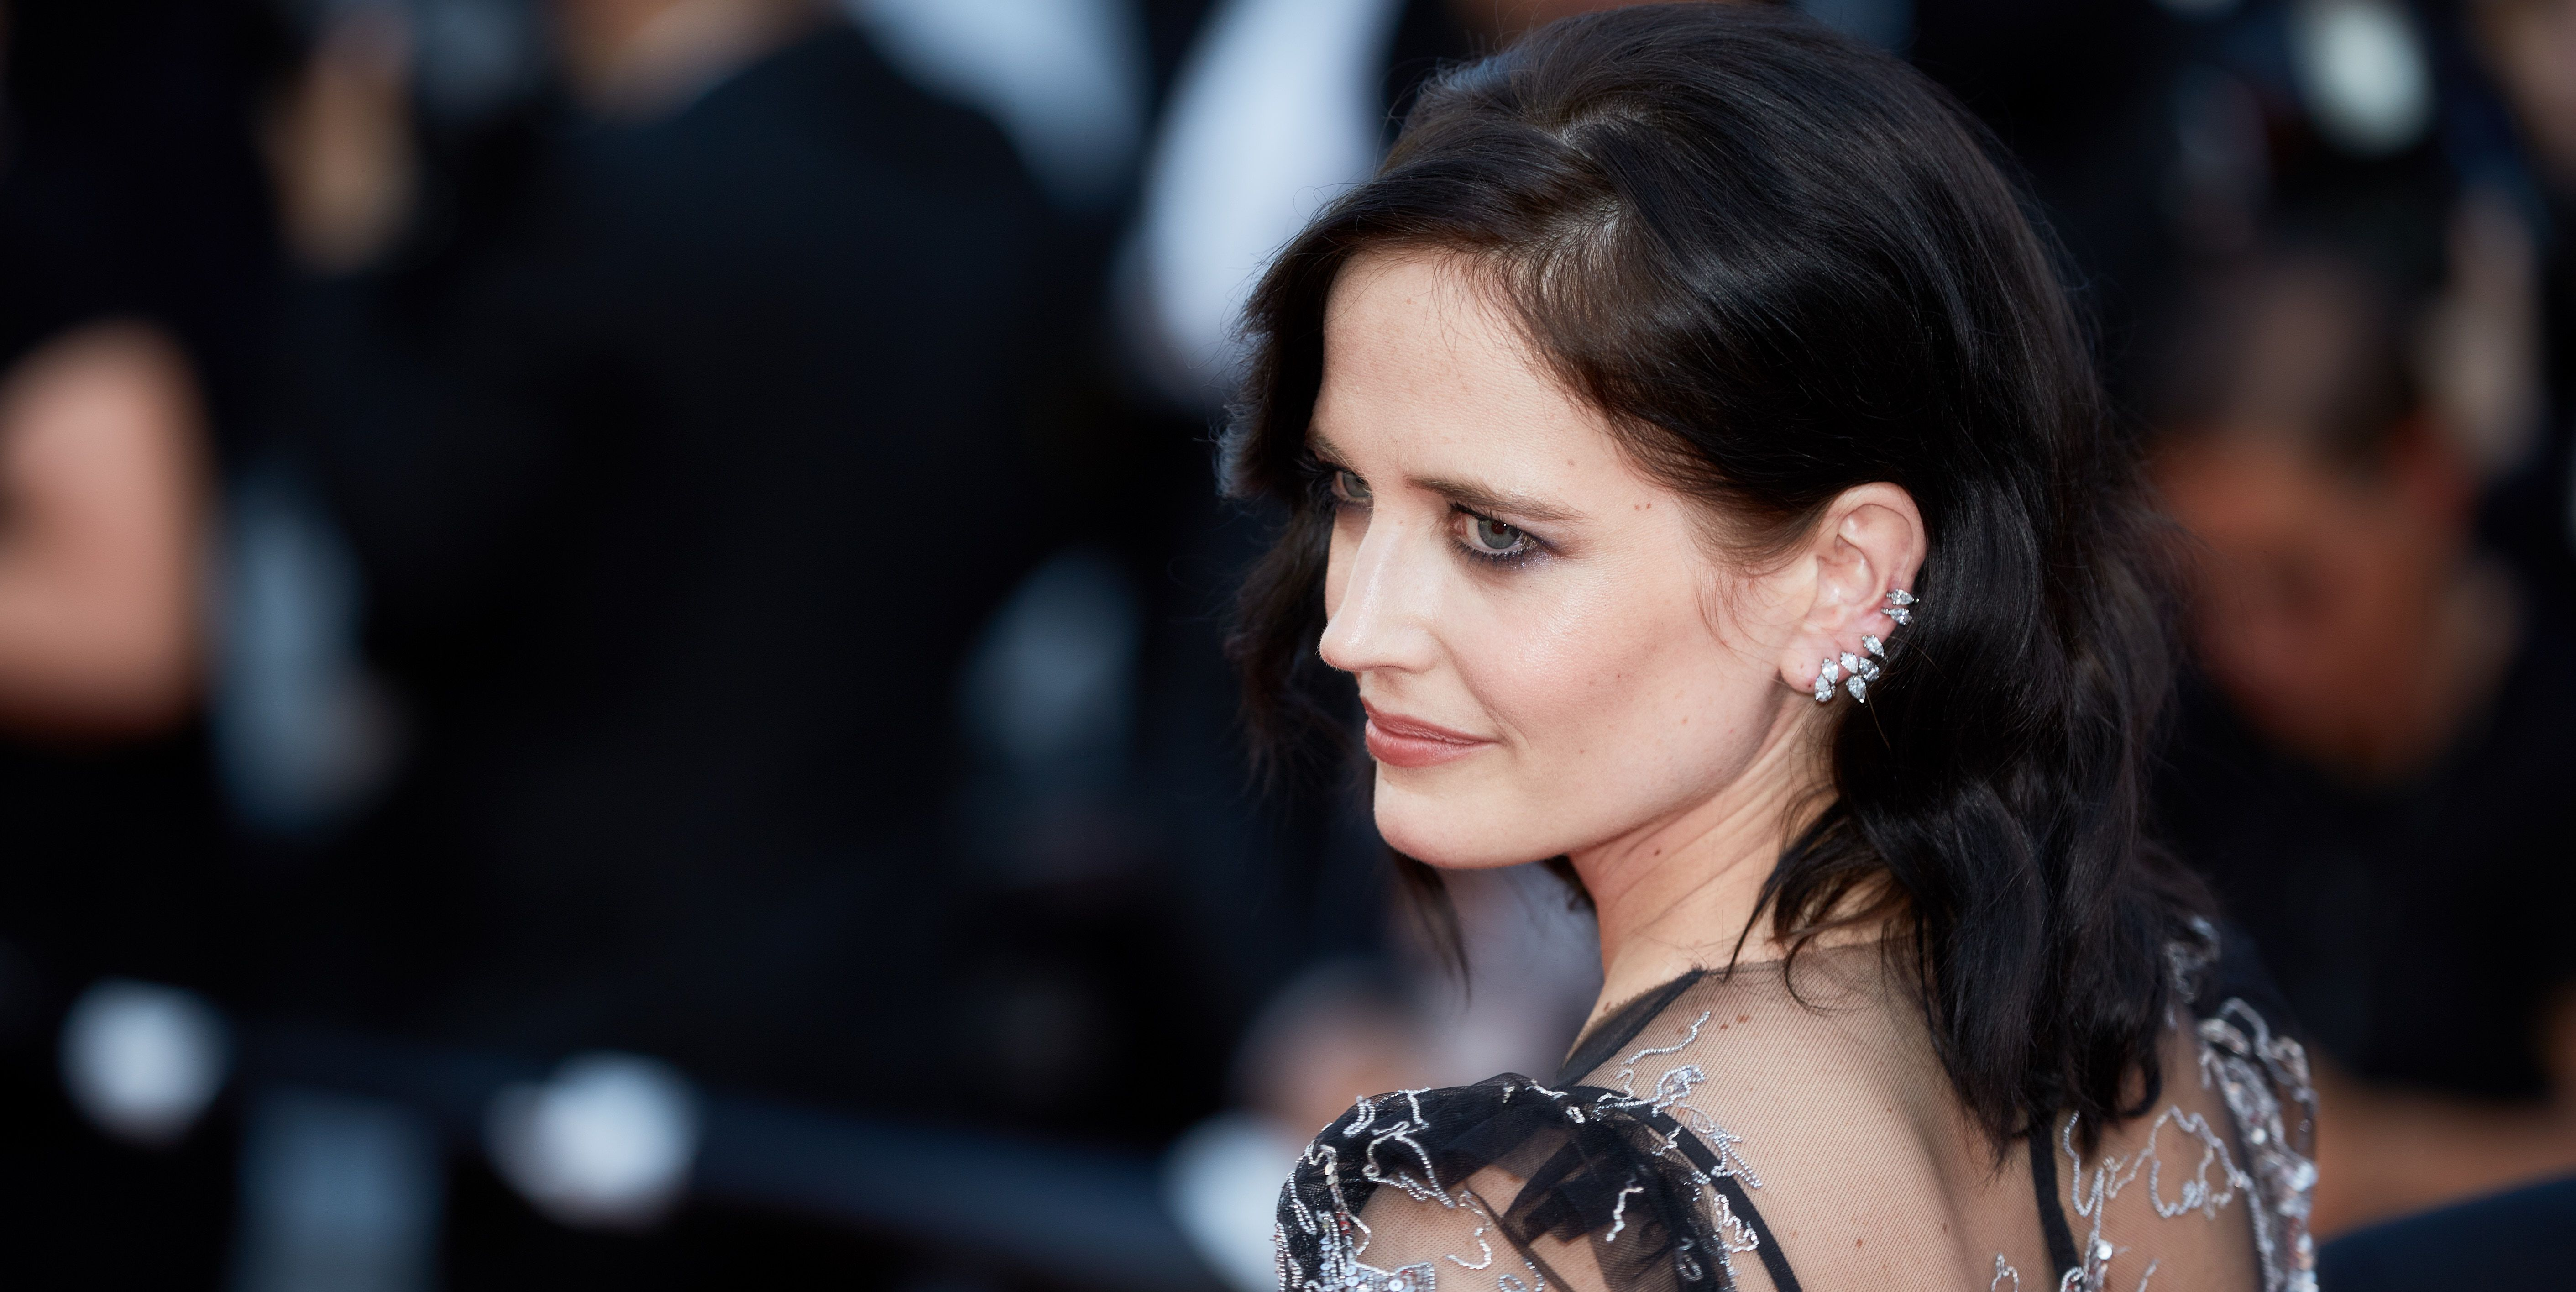 Eva Green at the Cannes Film Festival